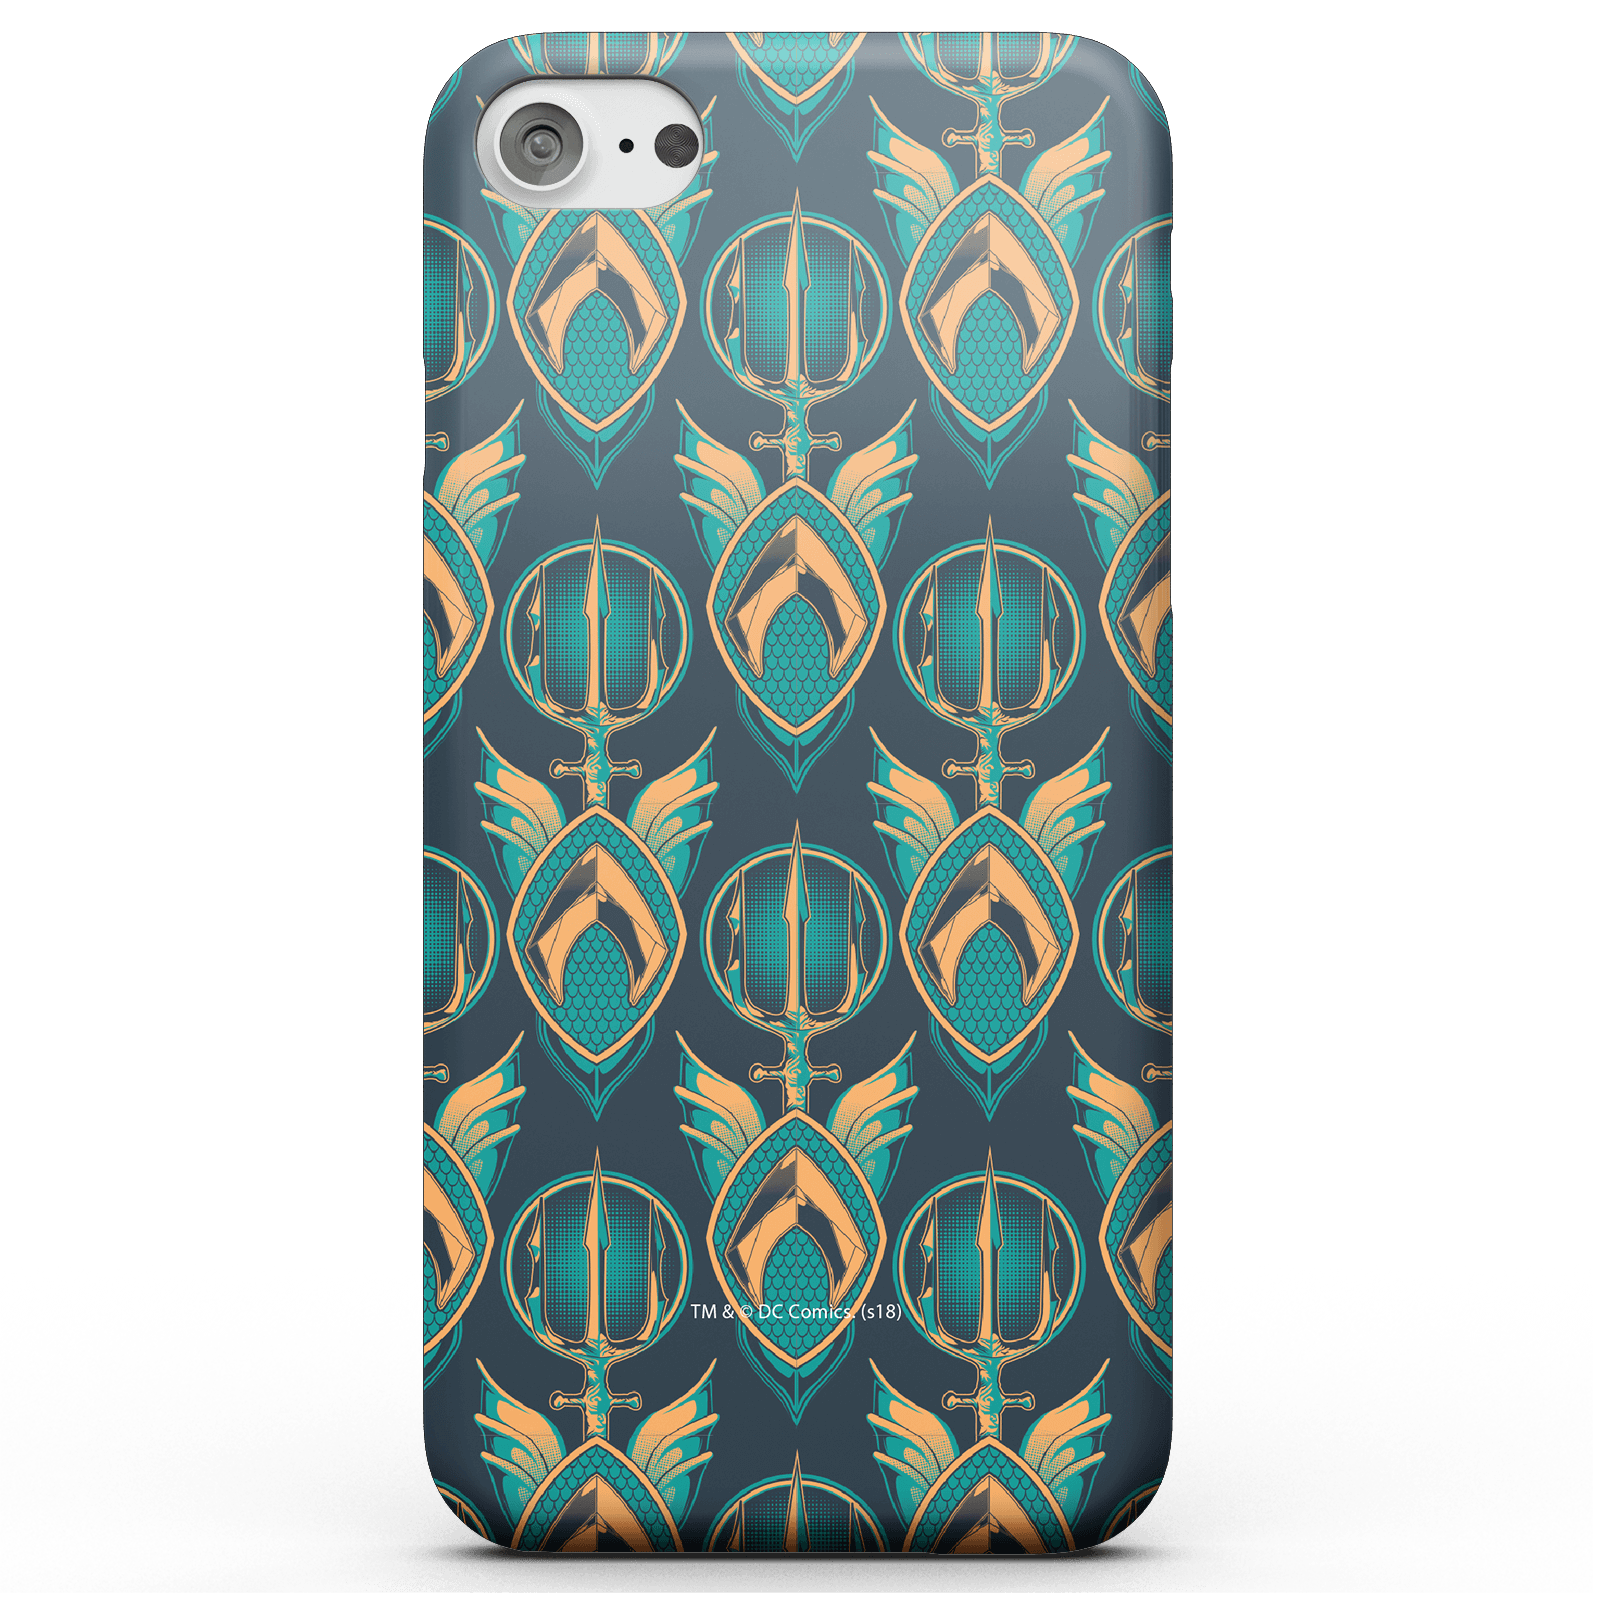 Funda Móvil DC Comics Aquaman para iPhone y Android - iPhone 6 - Carcasa rígida - Mate de DC Comics